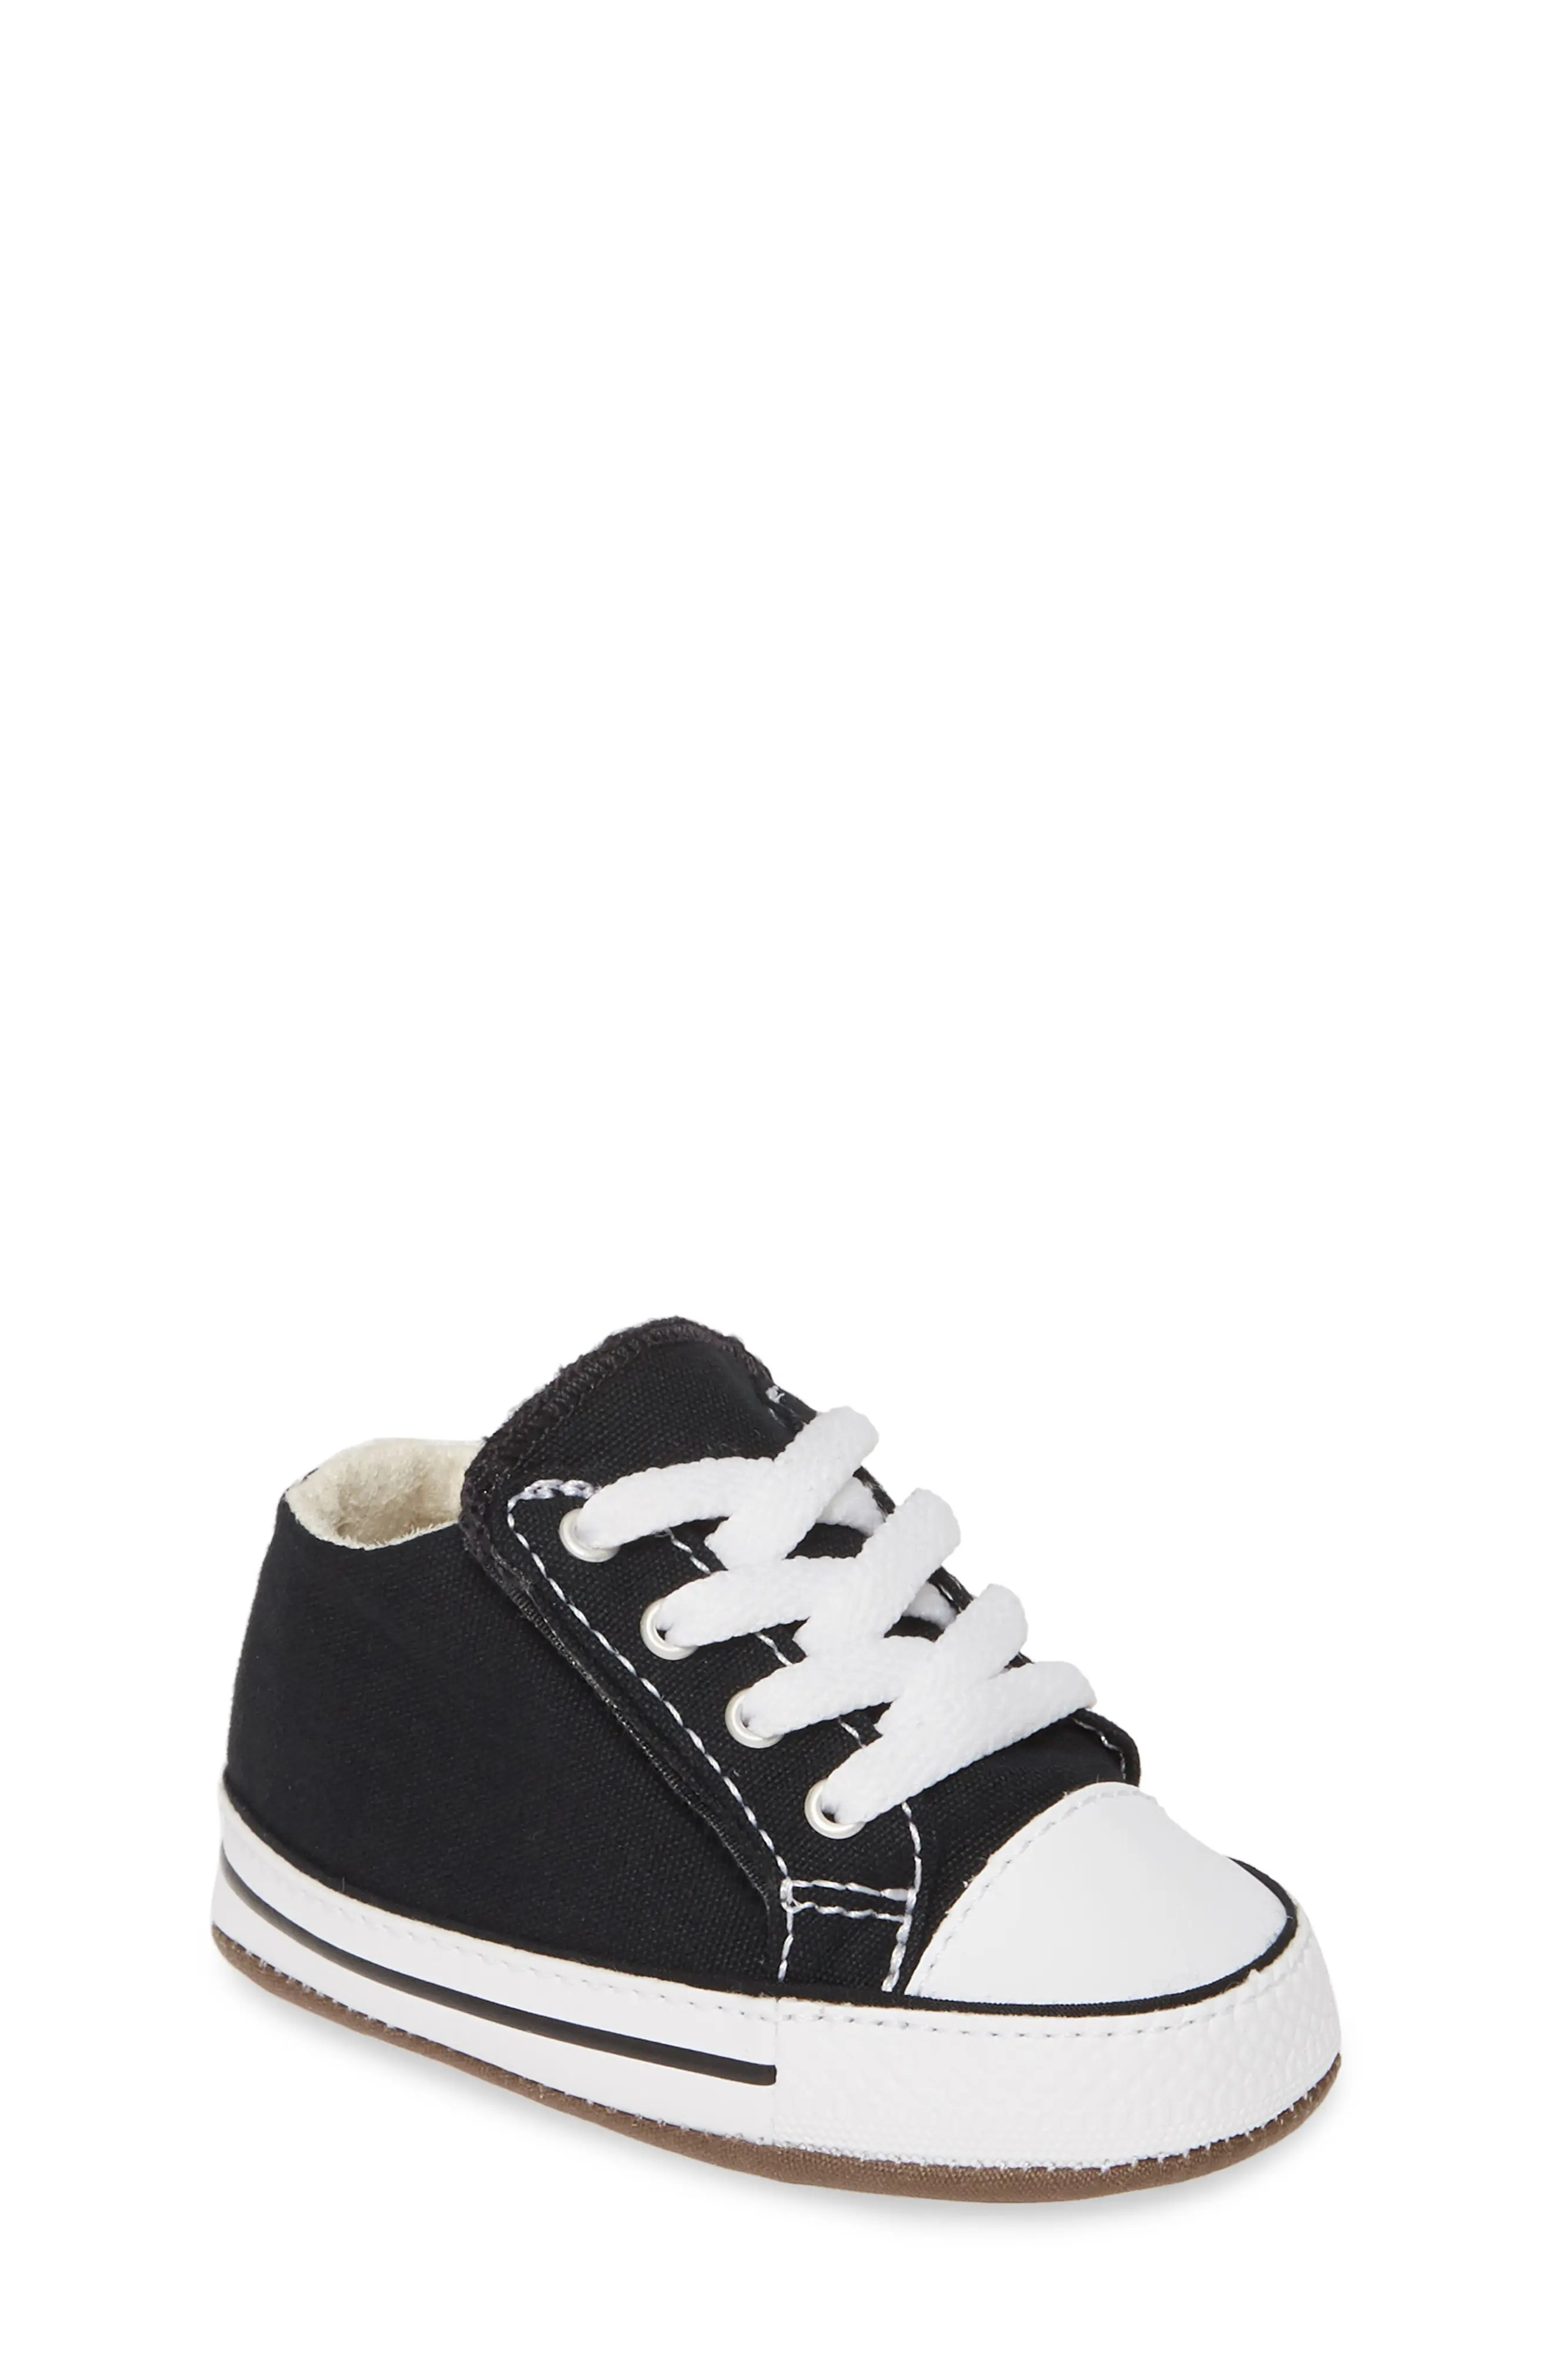 Baby White Converse Pram Shoes Baby Converse Crib Shoes White